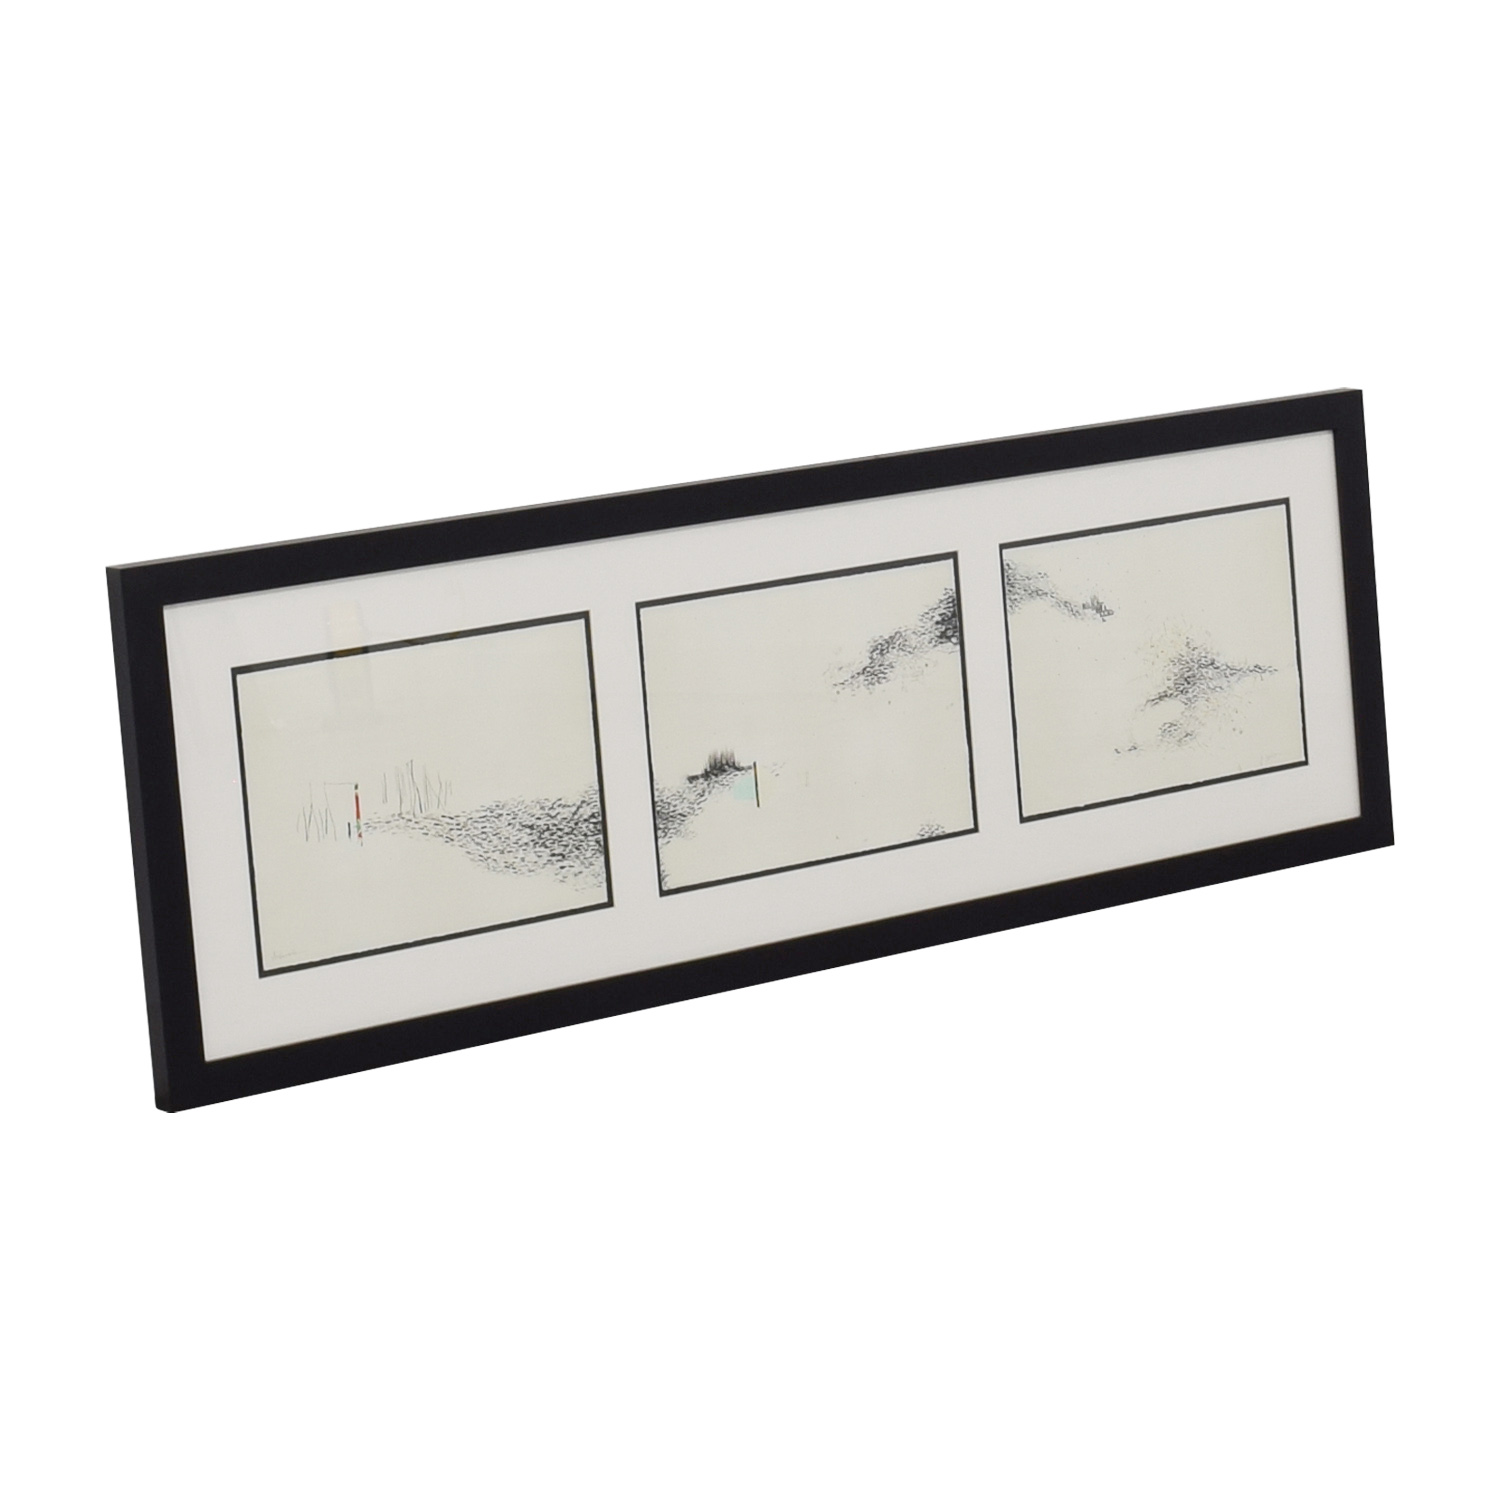 Crate & Barrel Crate & Barrel Intervals Triptych Print By Julie S Graham used